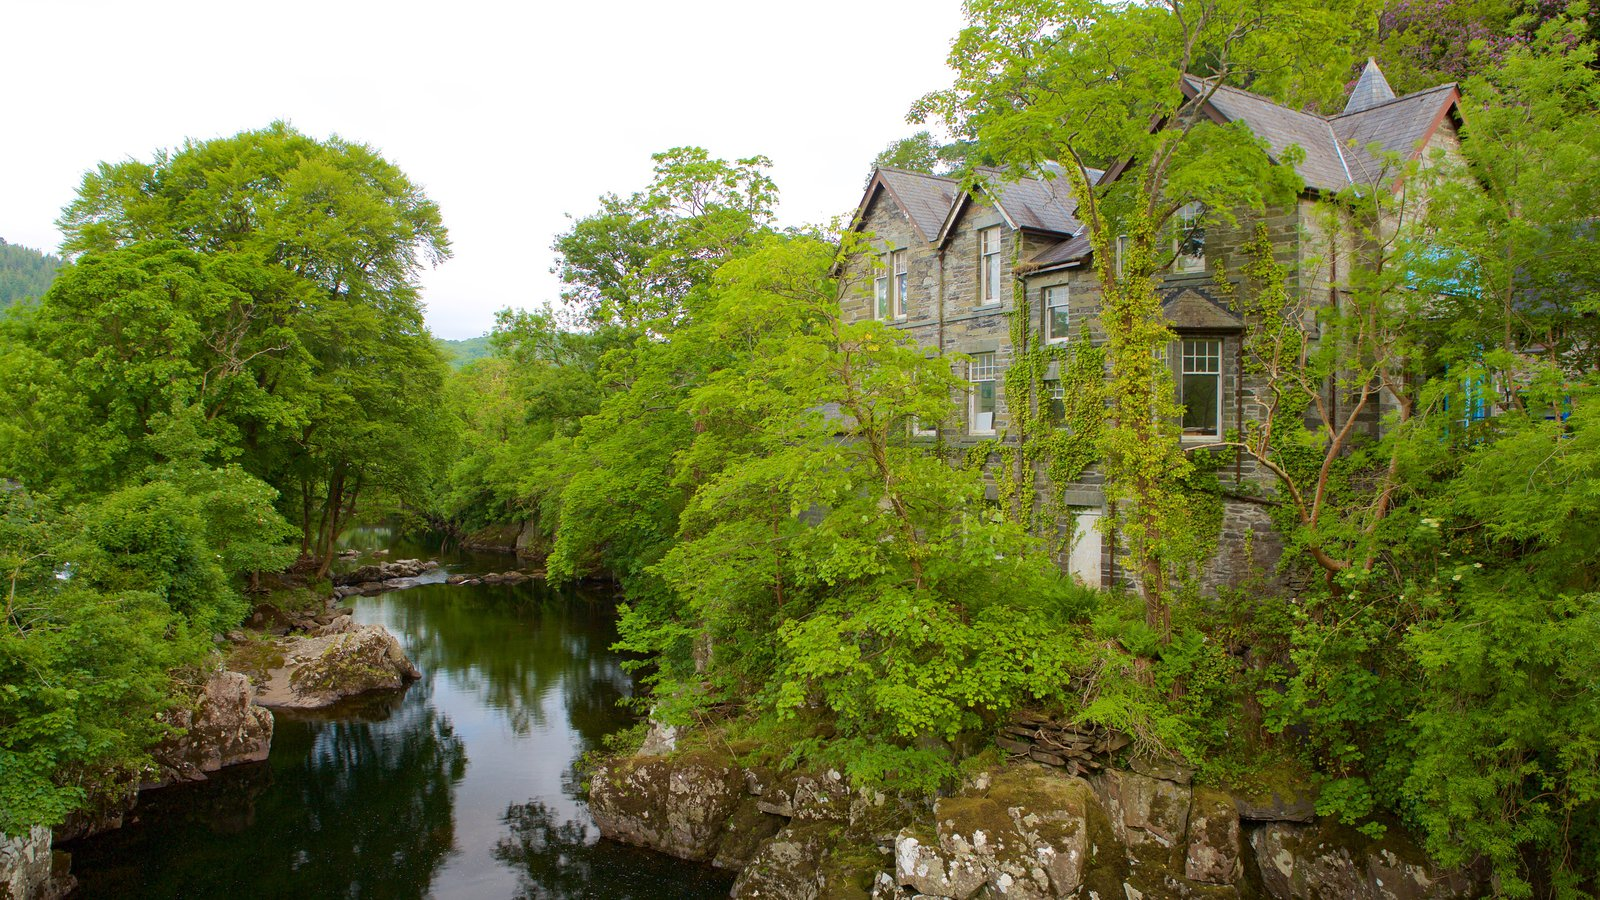 Betws-Y-Coed showing forests, a house and a river or creek